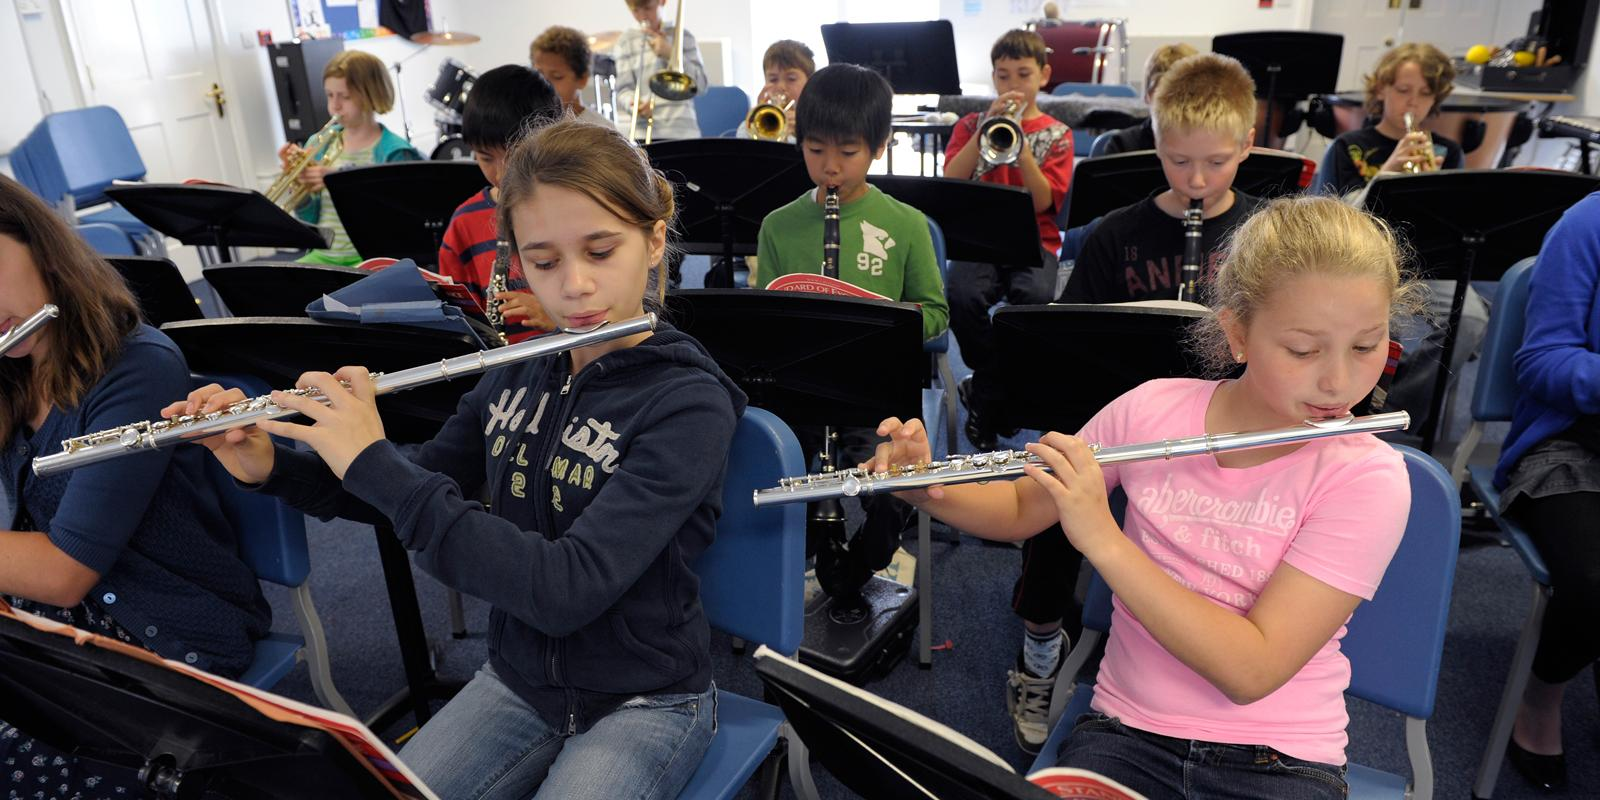 Students playing instruments in a music class